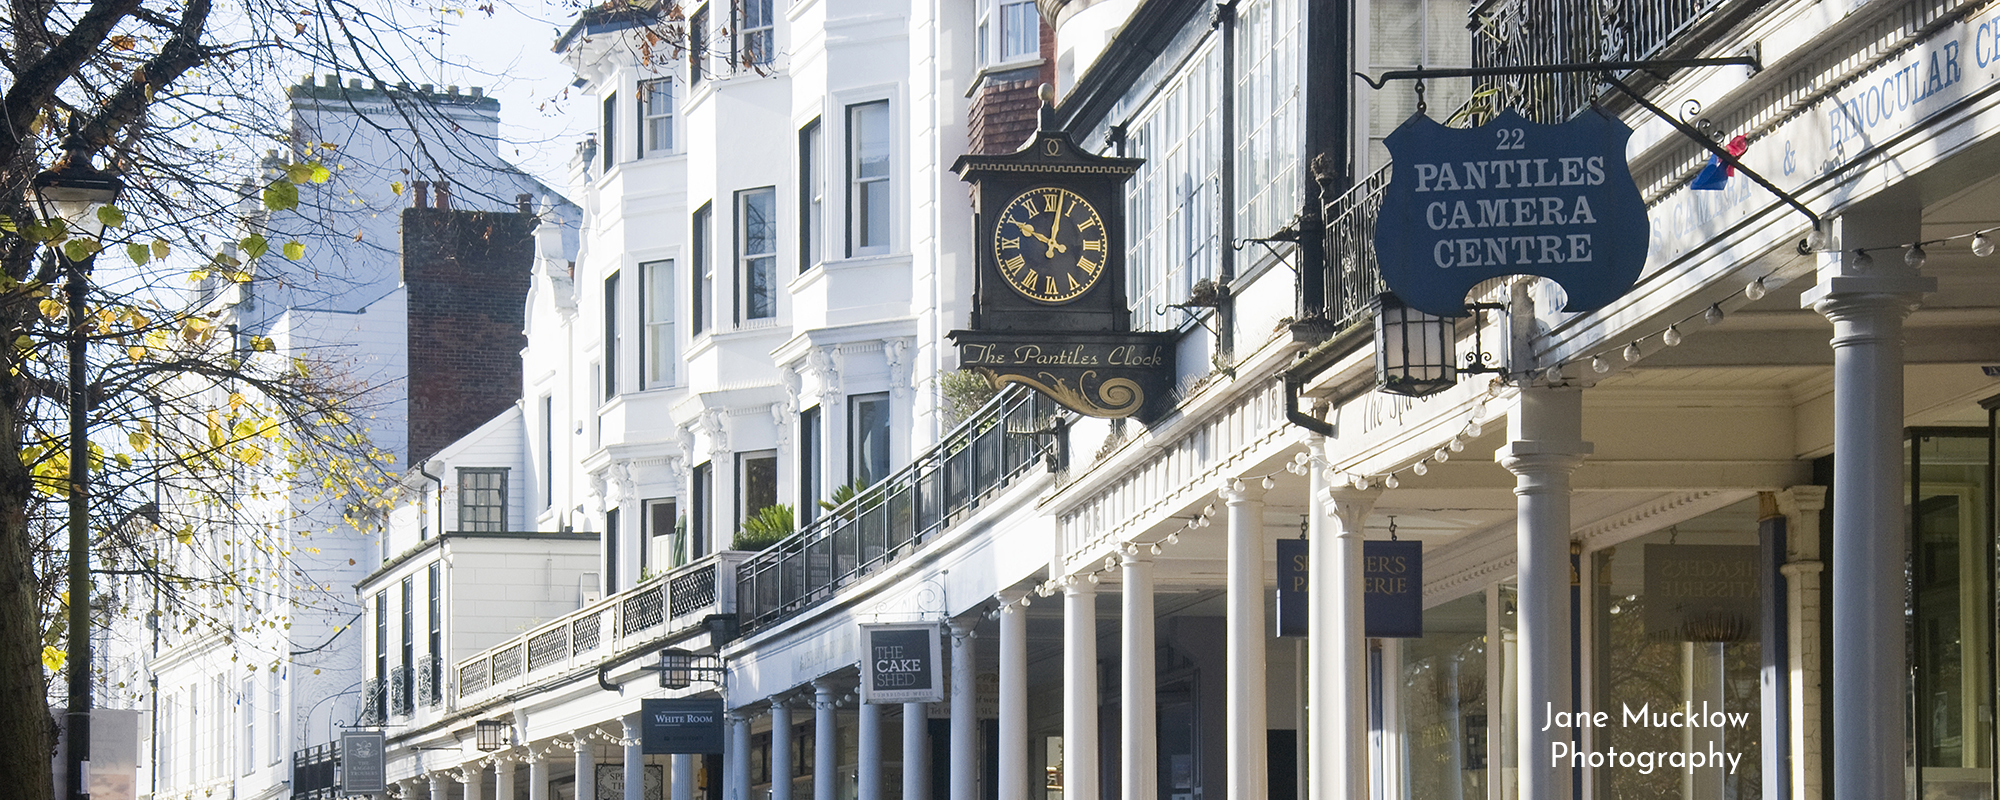 Photo by Jane Mucklow of the Pantiles in Tunbridge Wells, available as a print for your wall